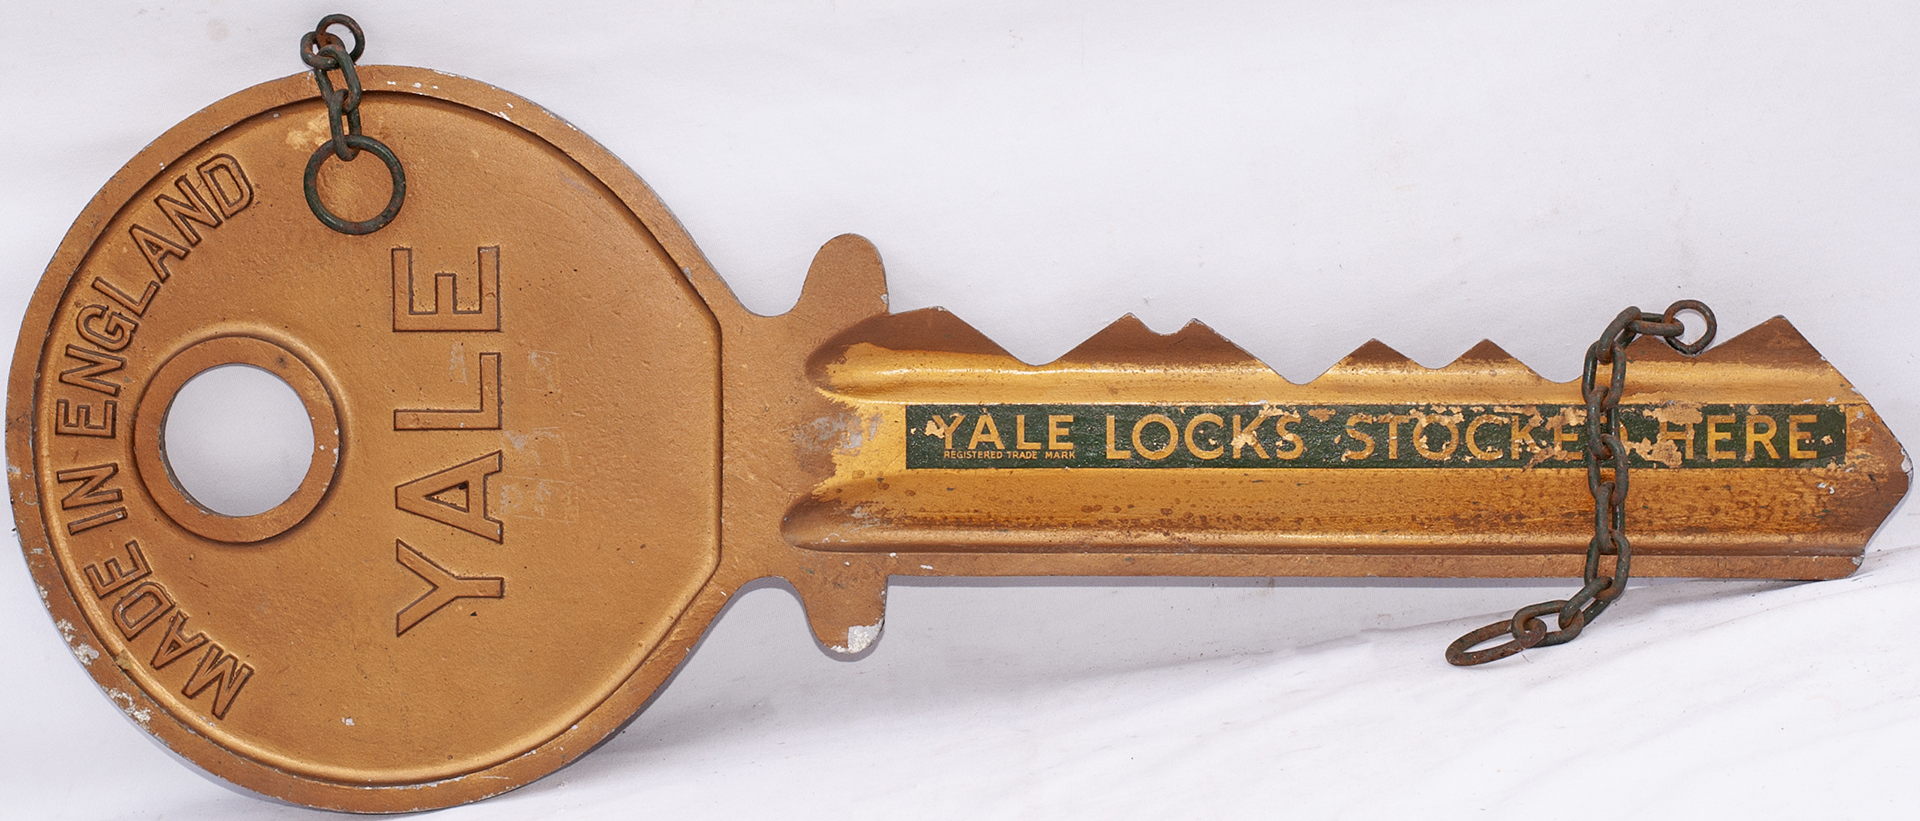 Advertising display sign in the shape of a large yale key with YALE KEYS STOCKED HERE . Cast